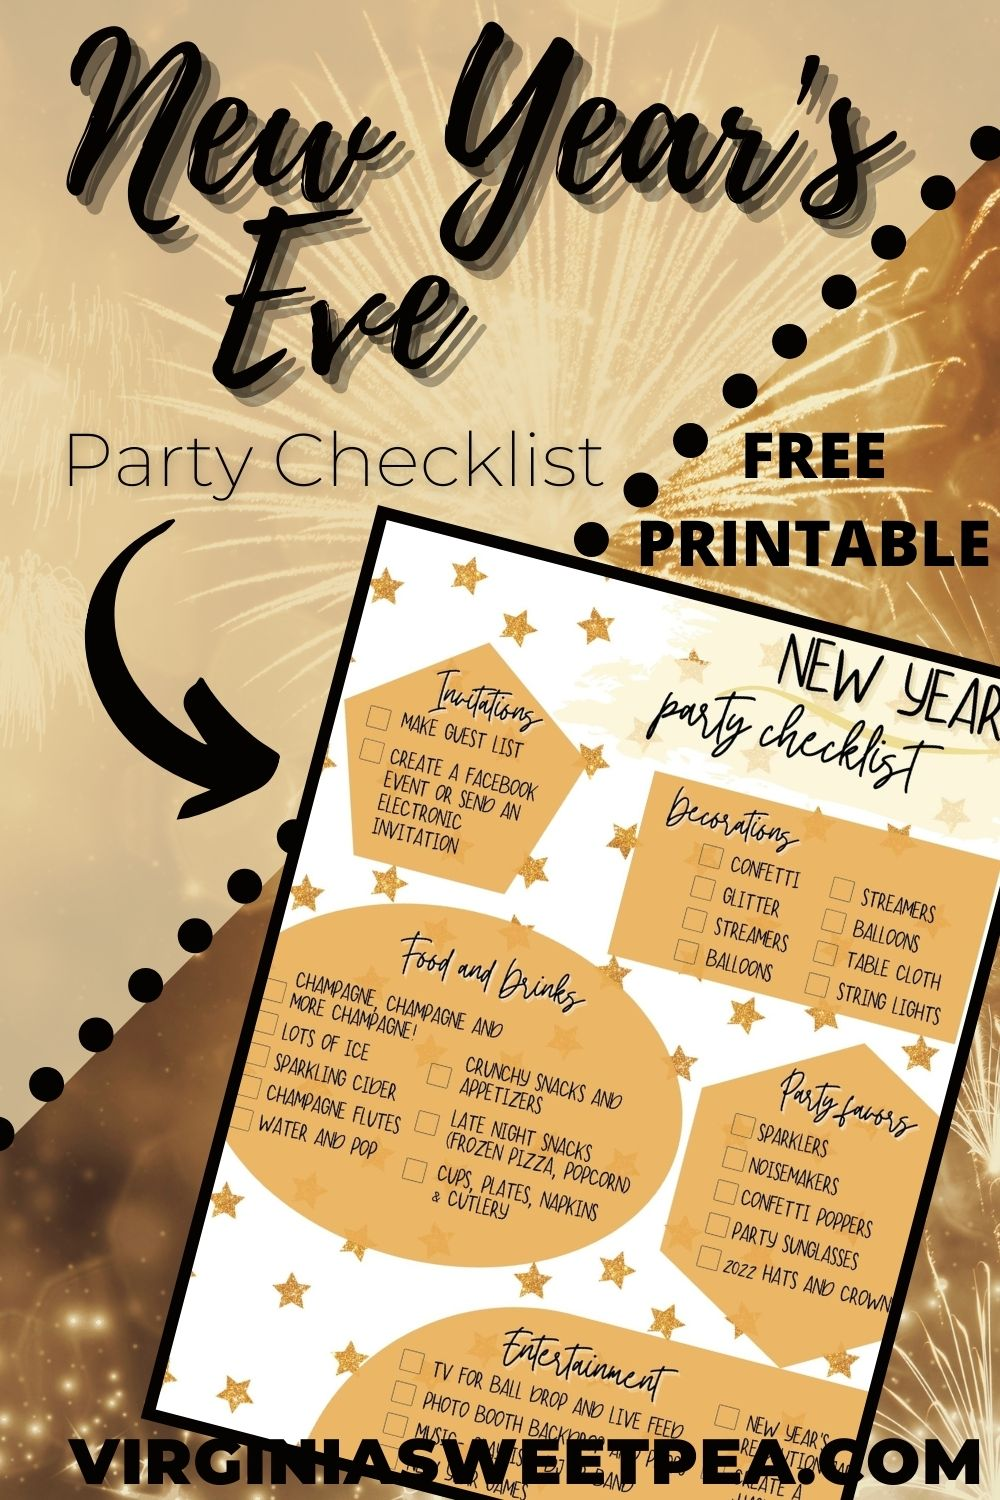 Use this free printable checklist to plan the ultimate New Year's party for family and friends. via @spaula